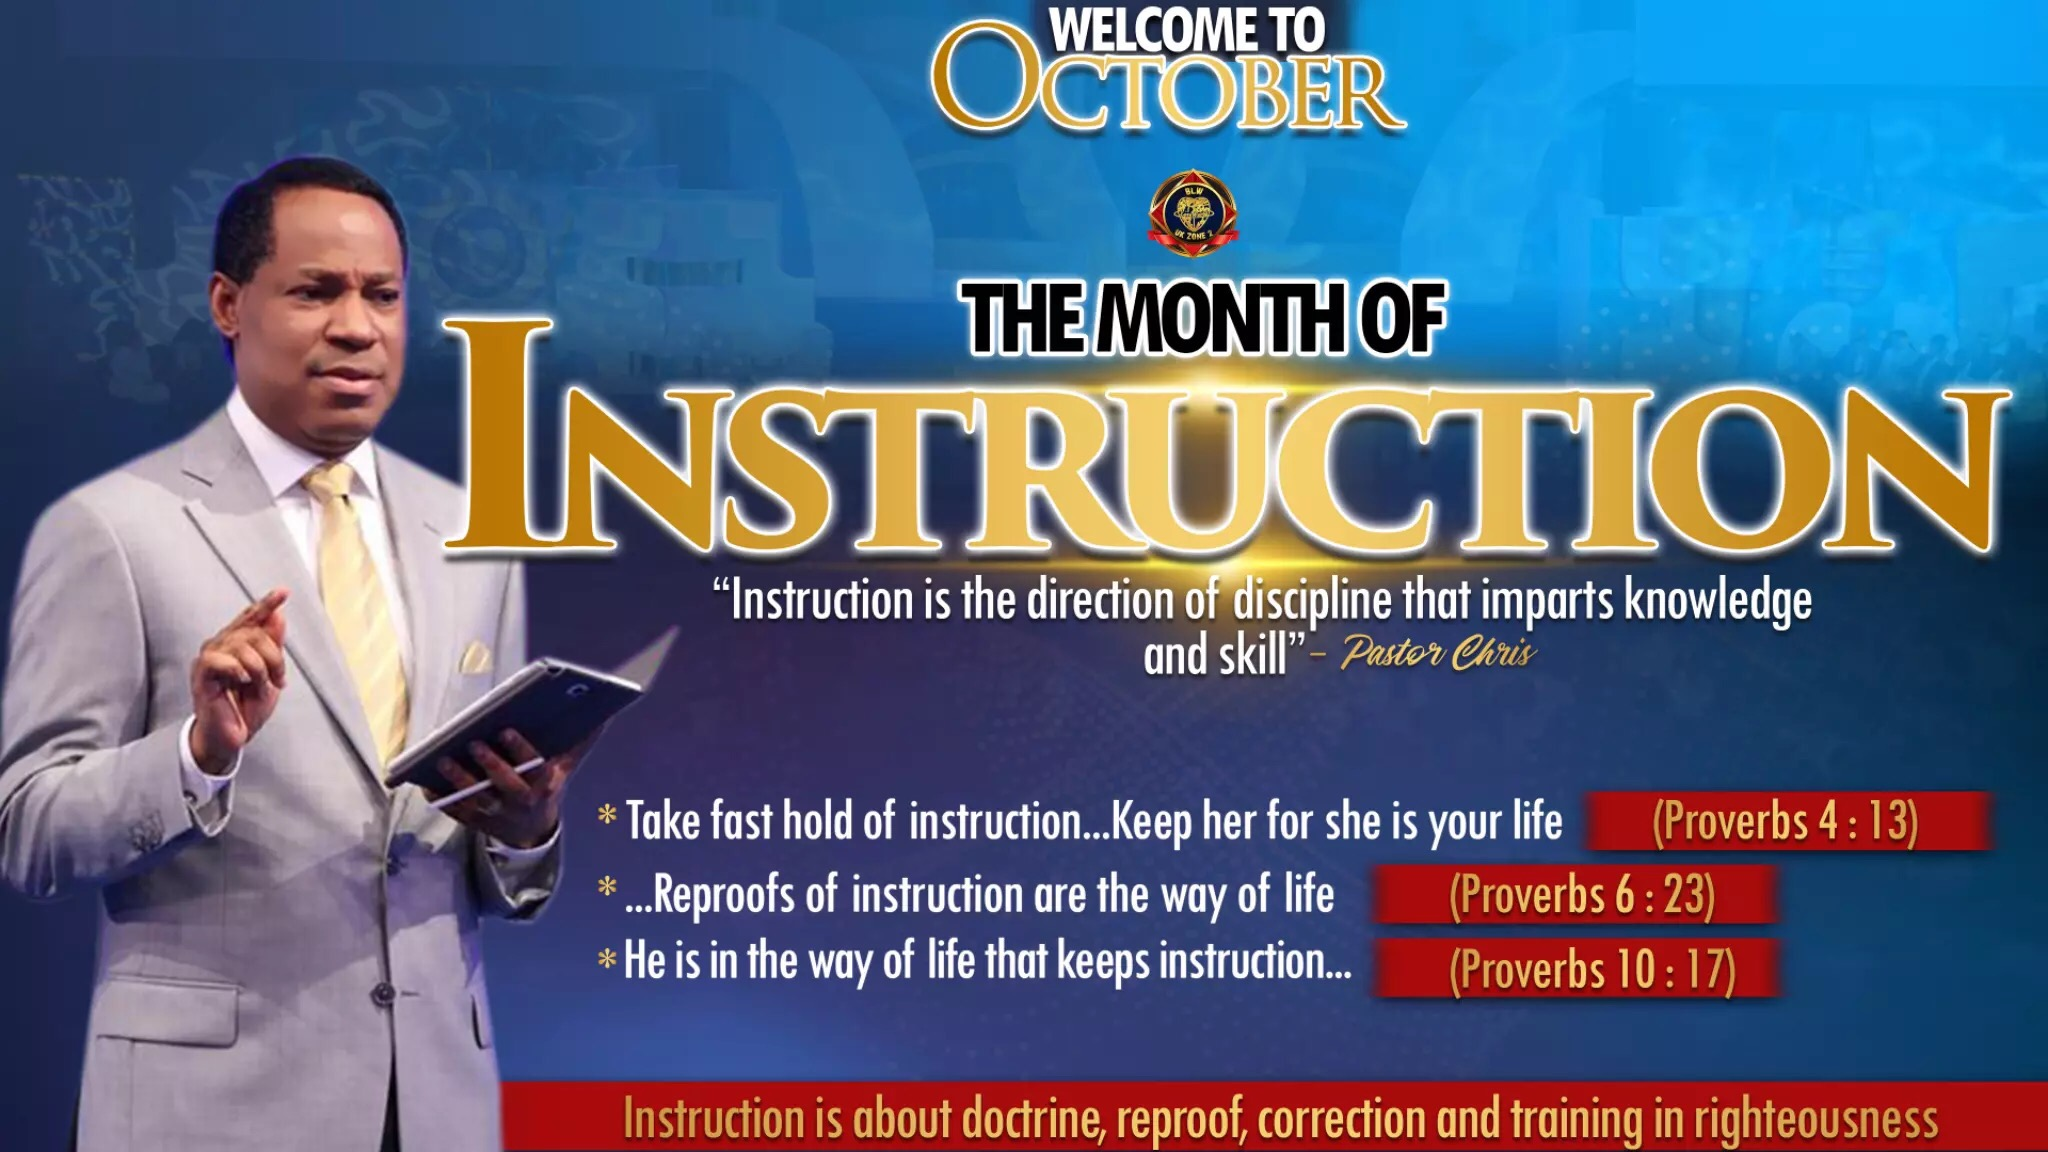 OCTOBER THE MONTH OF INSTRUCTION